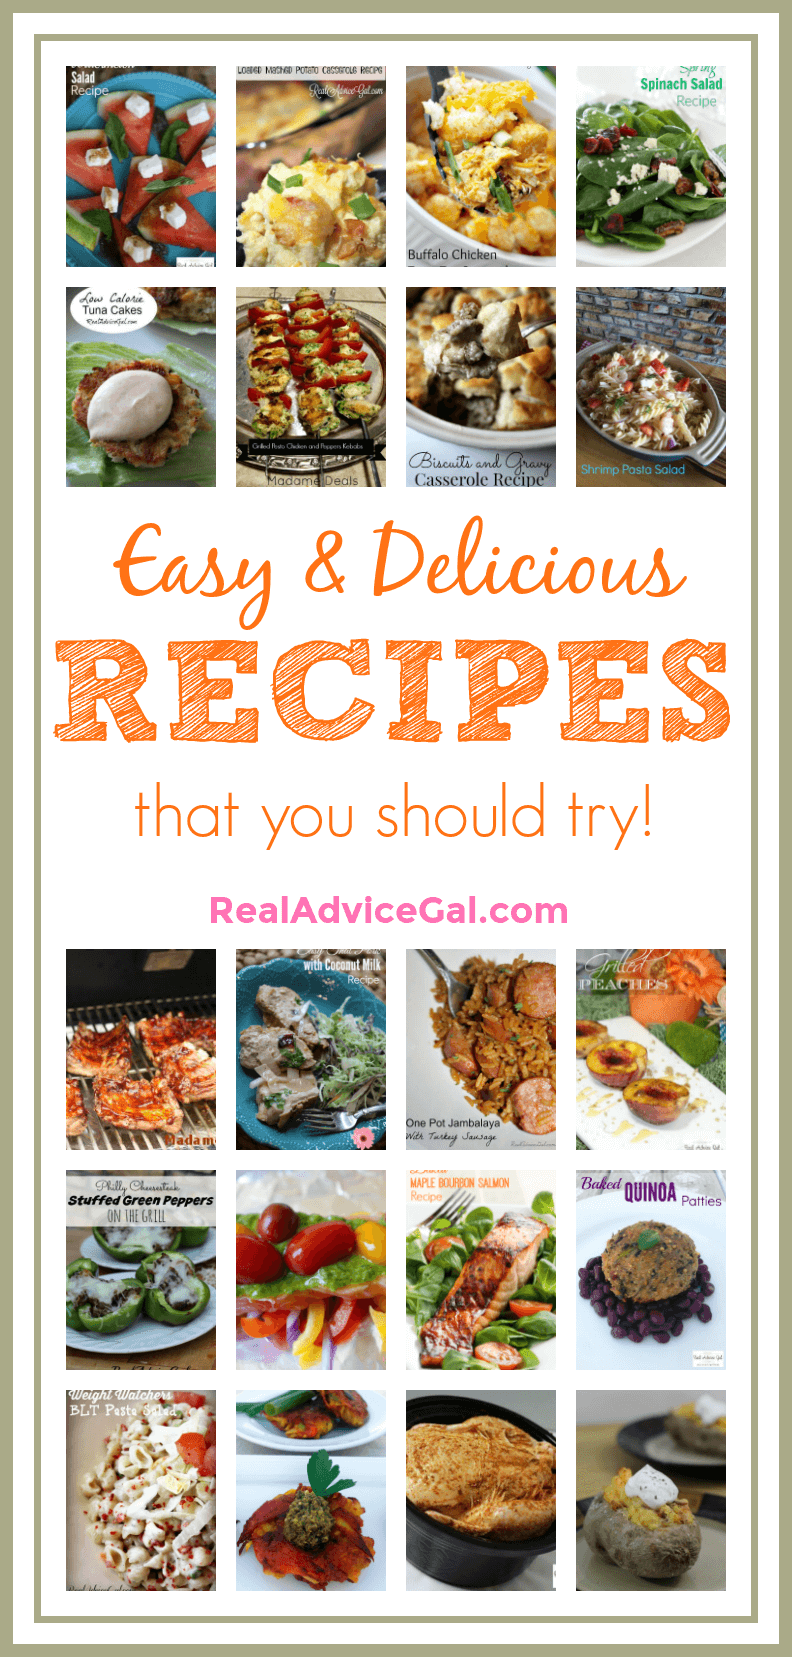 You have to try these delicious and easy recipes for your family. Make sure to save and pin these now!